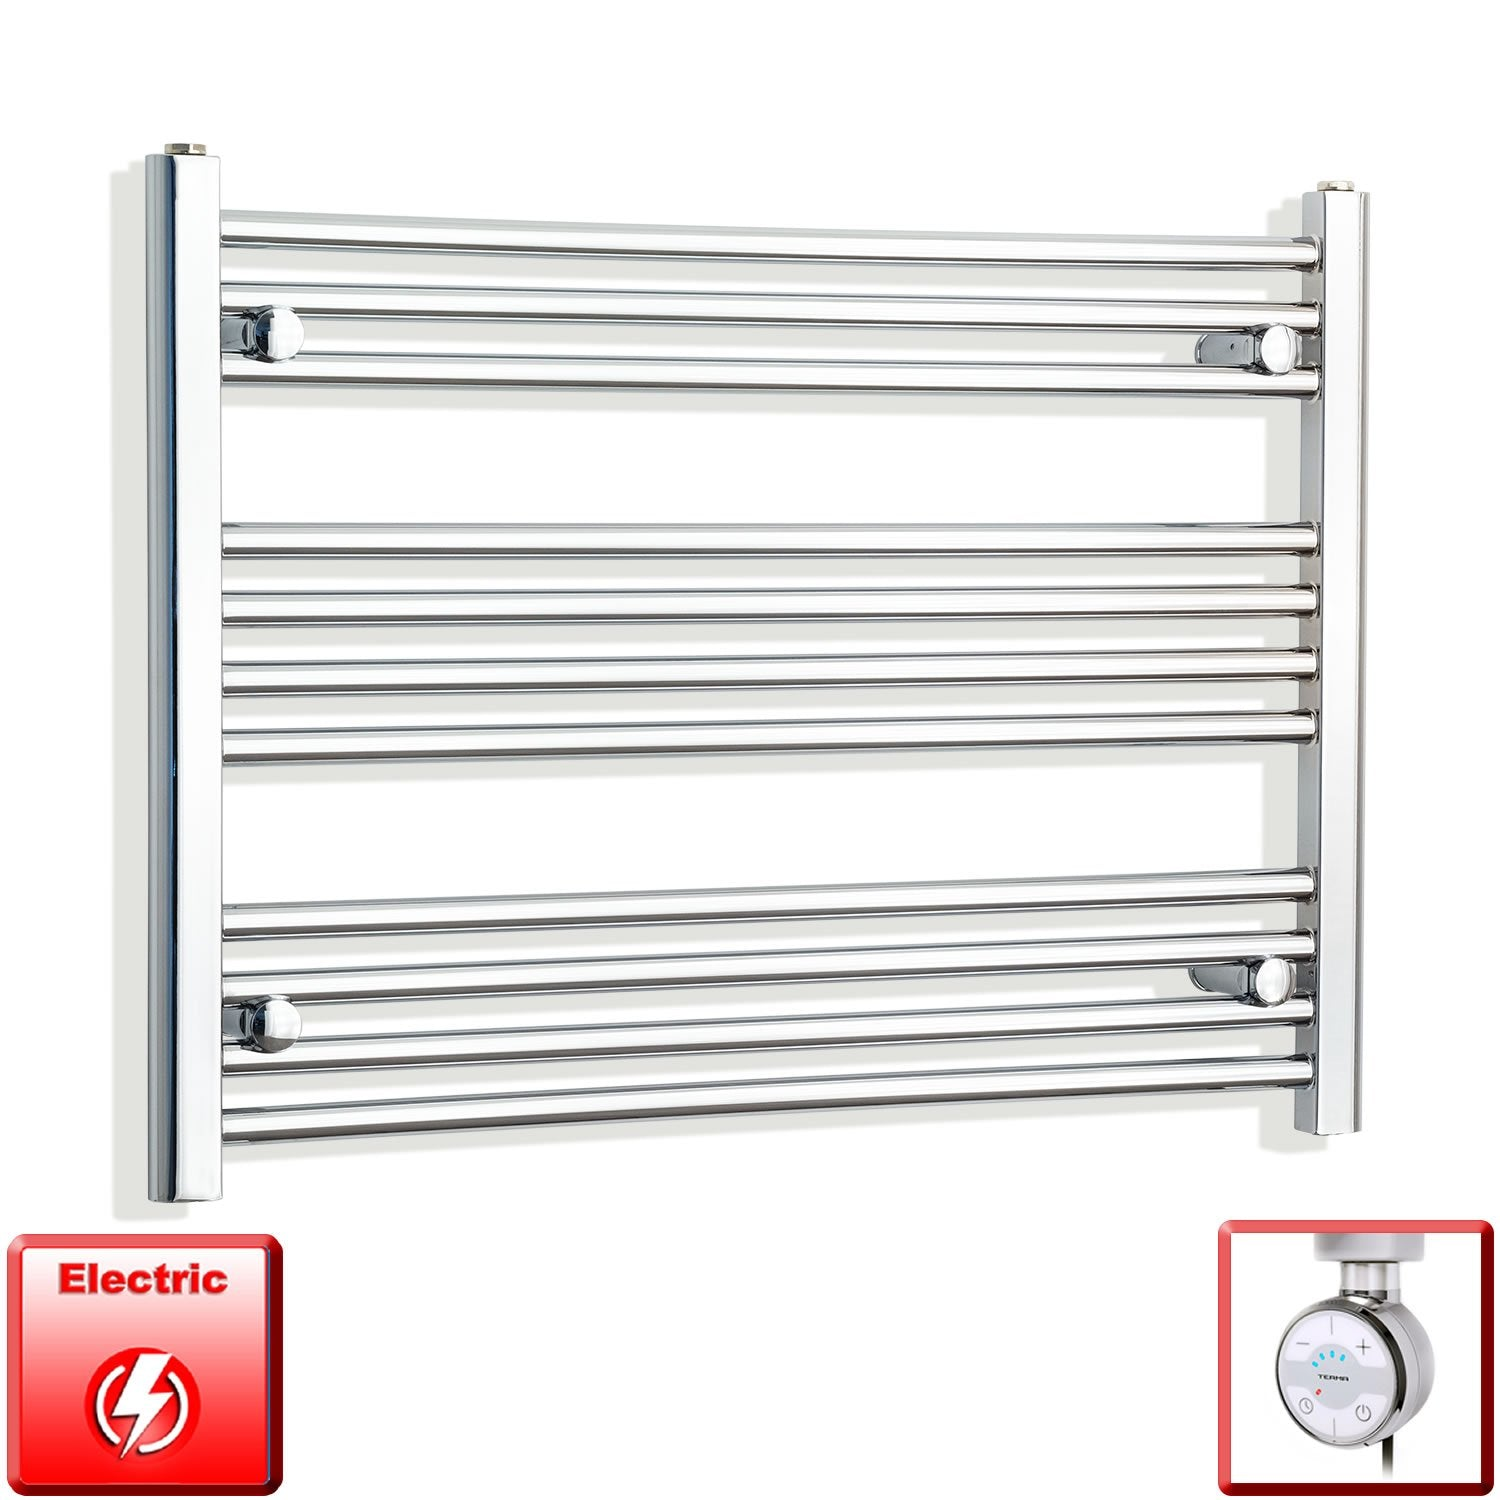 900mm Wide 600mm High Flat Chrome Pre-Filled Electric Heated Towel Rail Radiator HTR,MOA Thermostatic Element